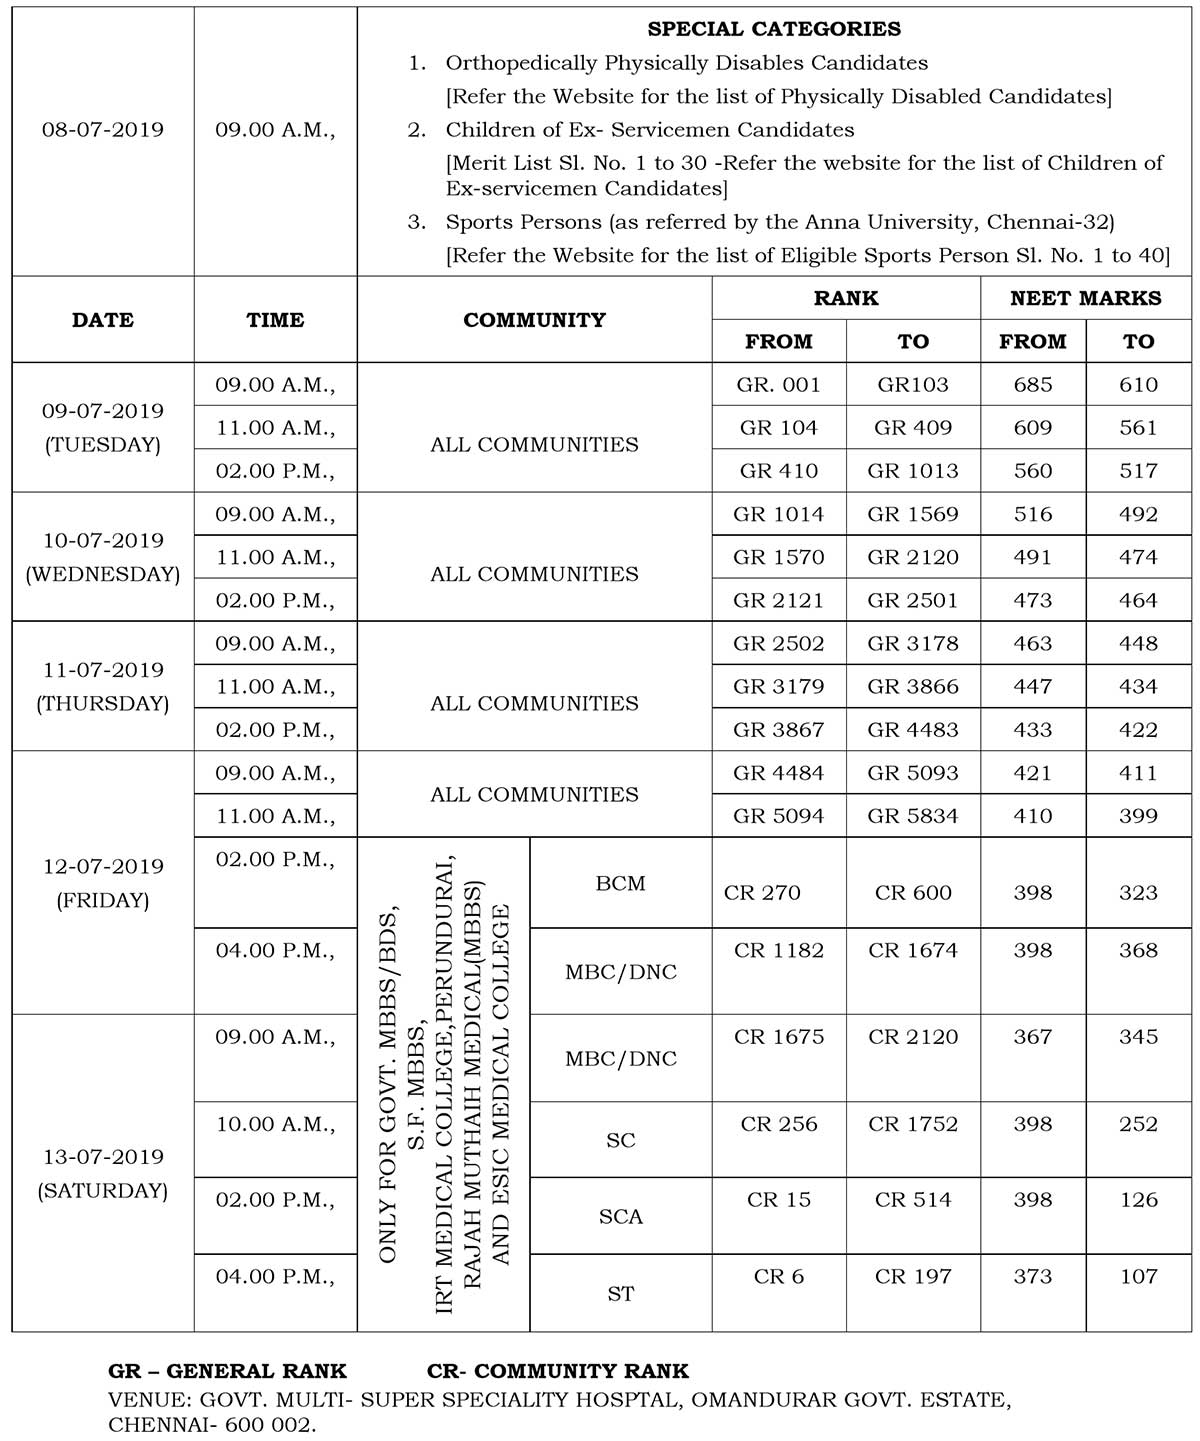 Tentative Tamil Nadu Medical Counselling Schedule for MBBS and BDS Courses